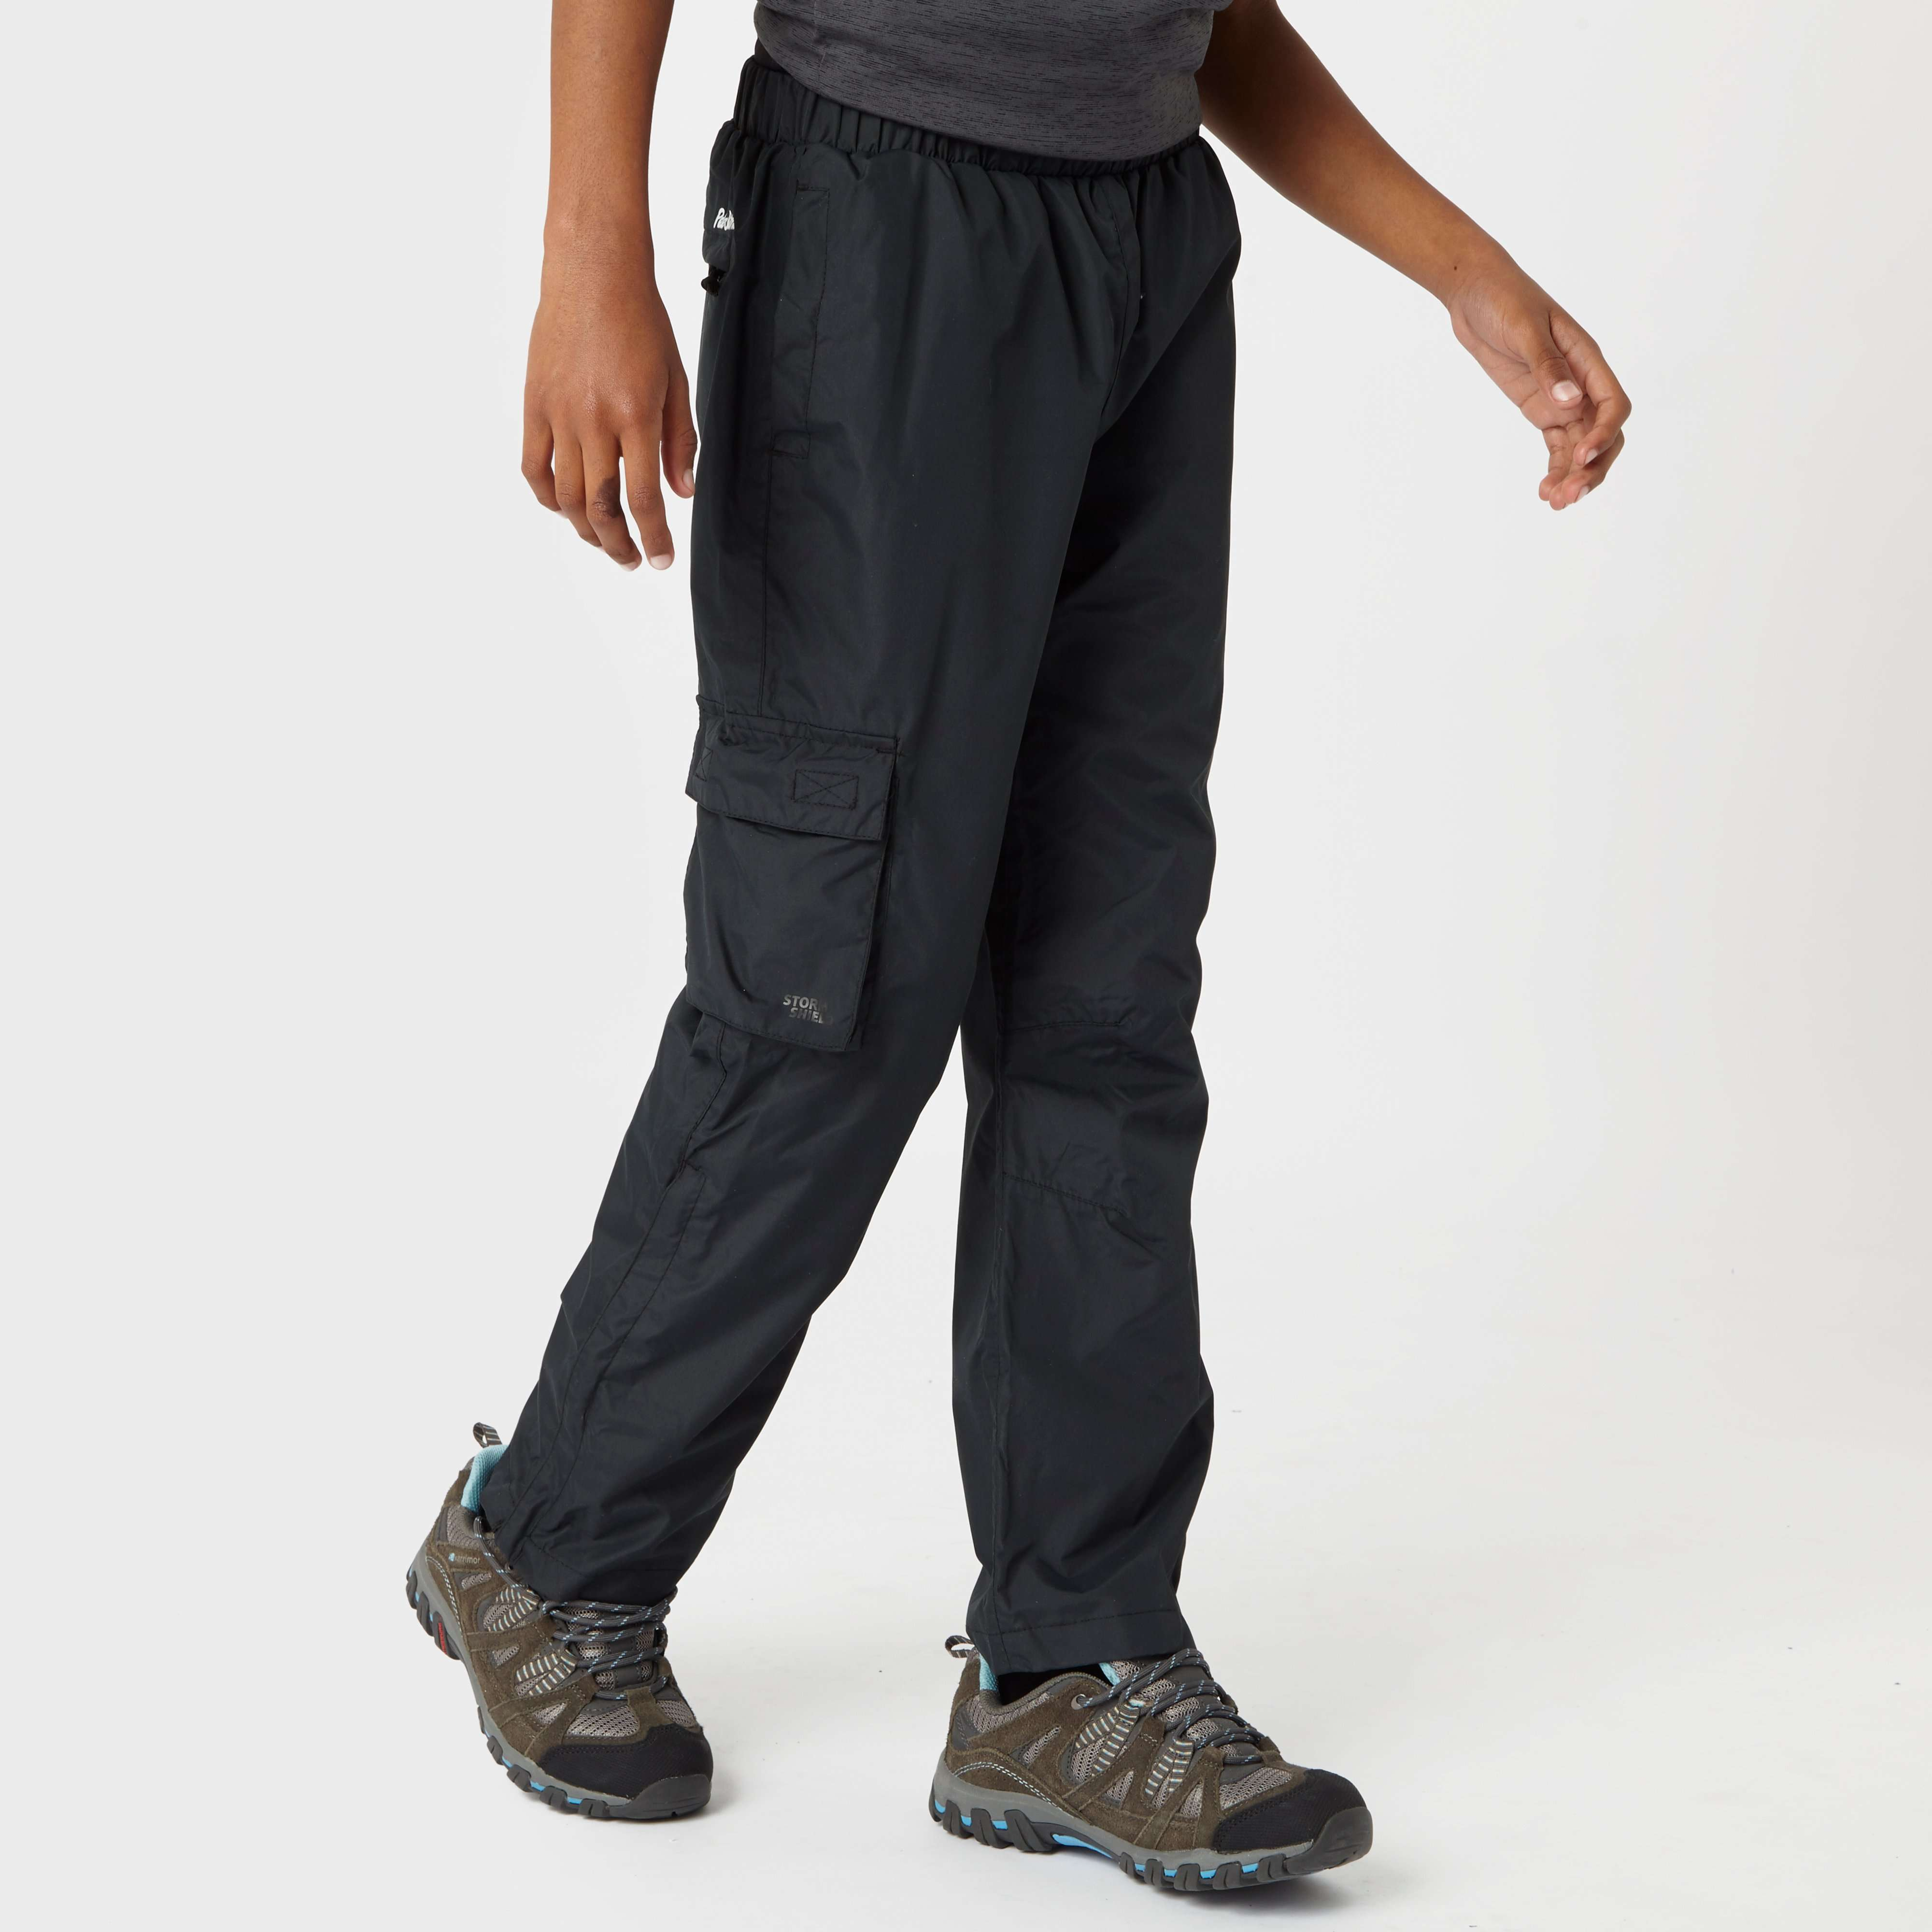 PETER STORM Kids' Unisex Storm Waterproof Trousers